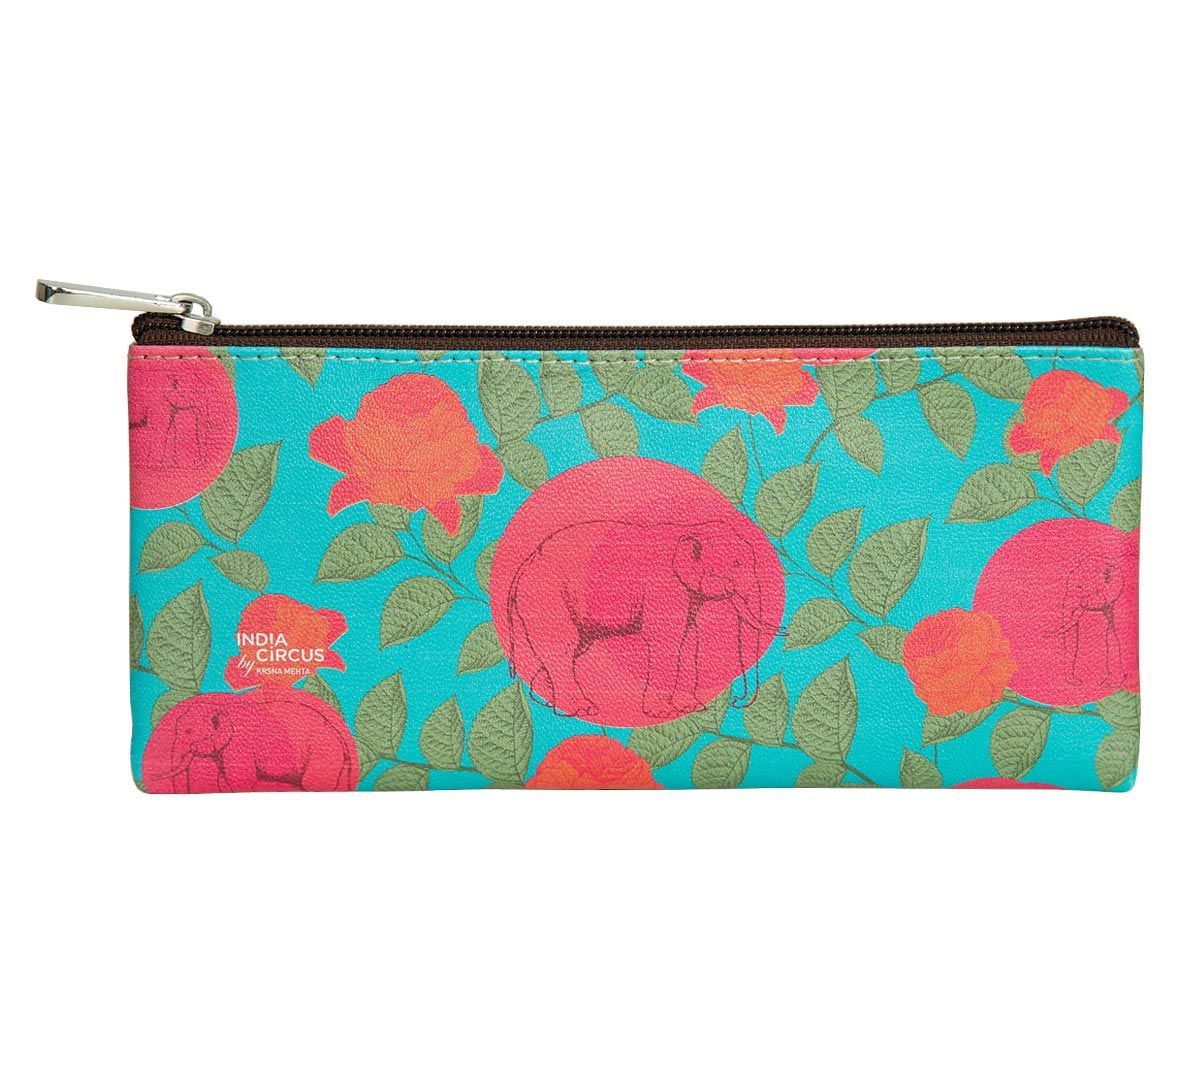 India Circus Mastodon's Bloom Small Utility Pouch